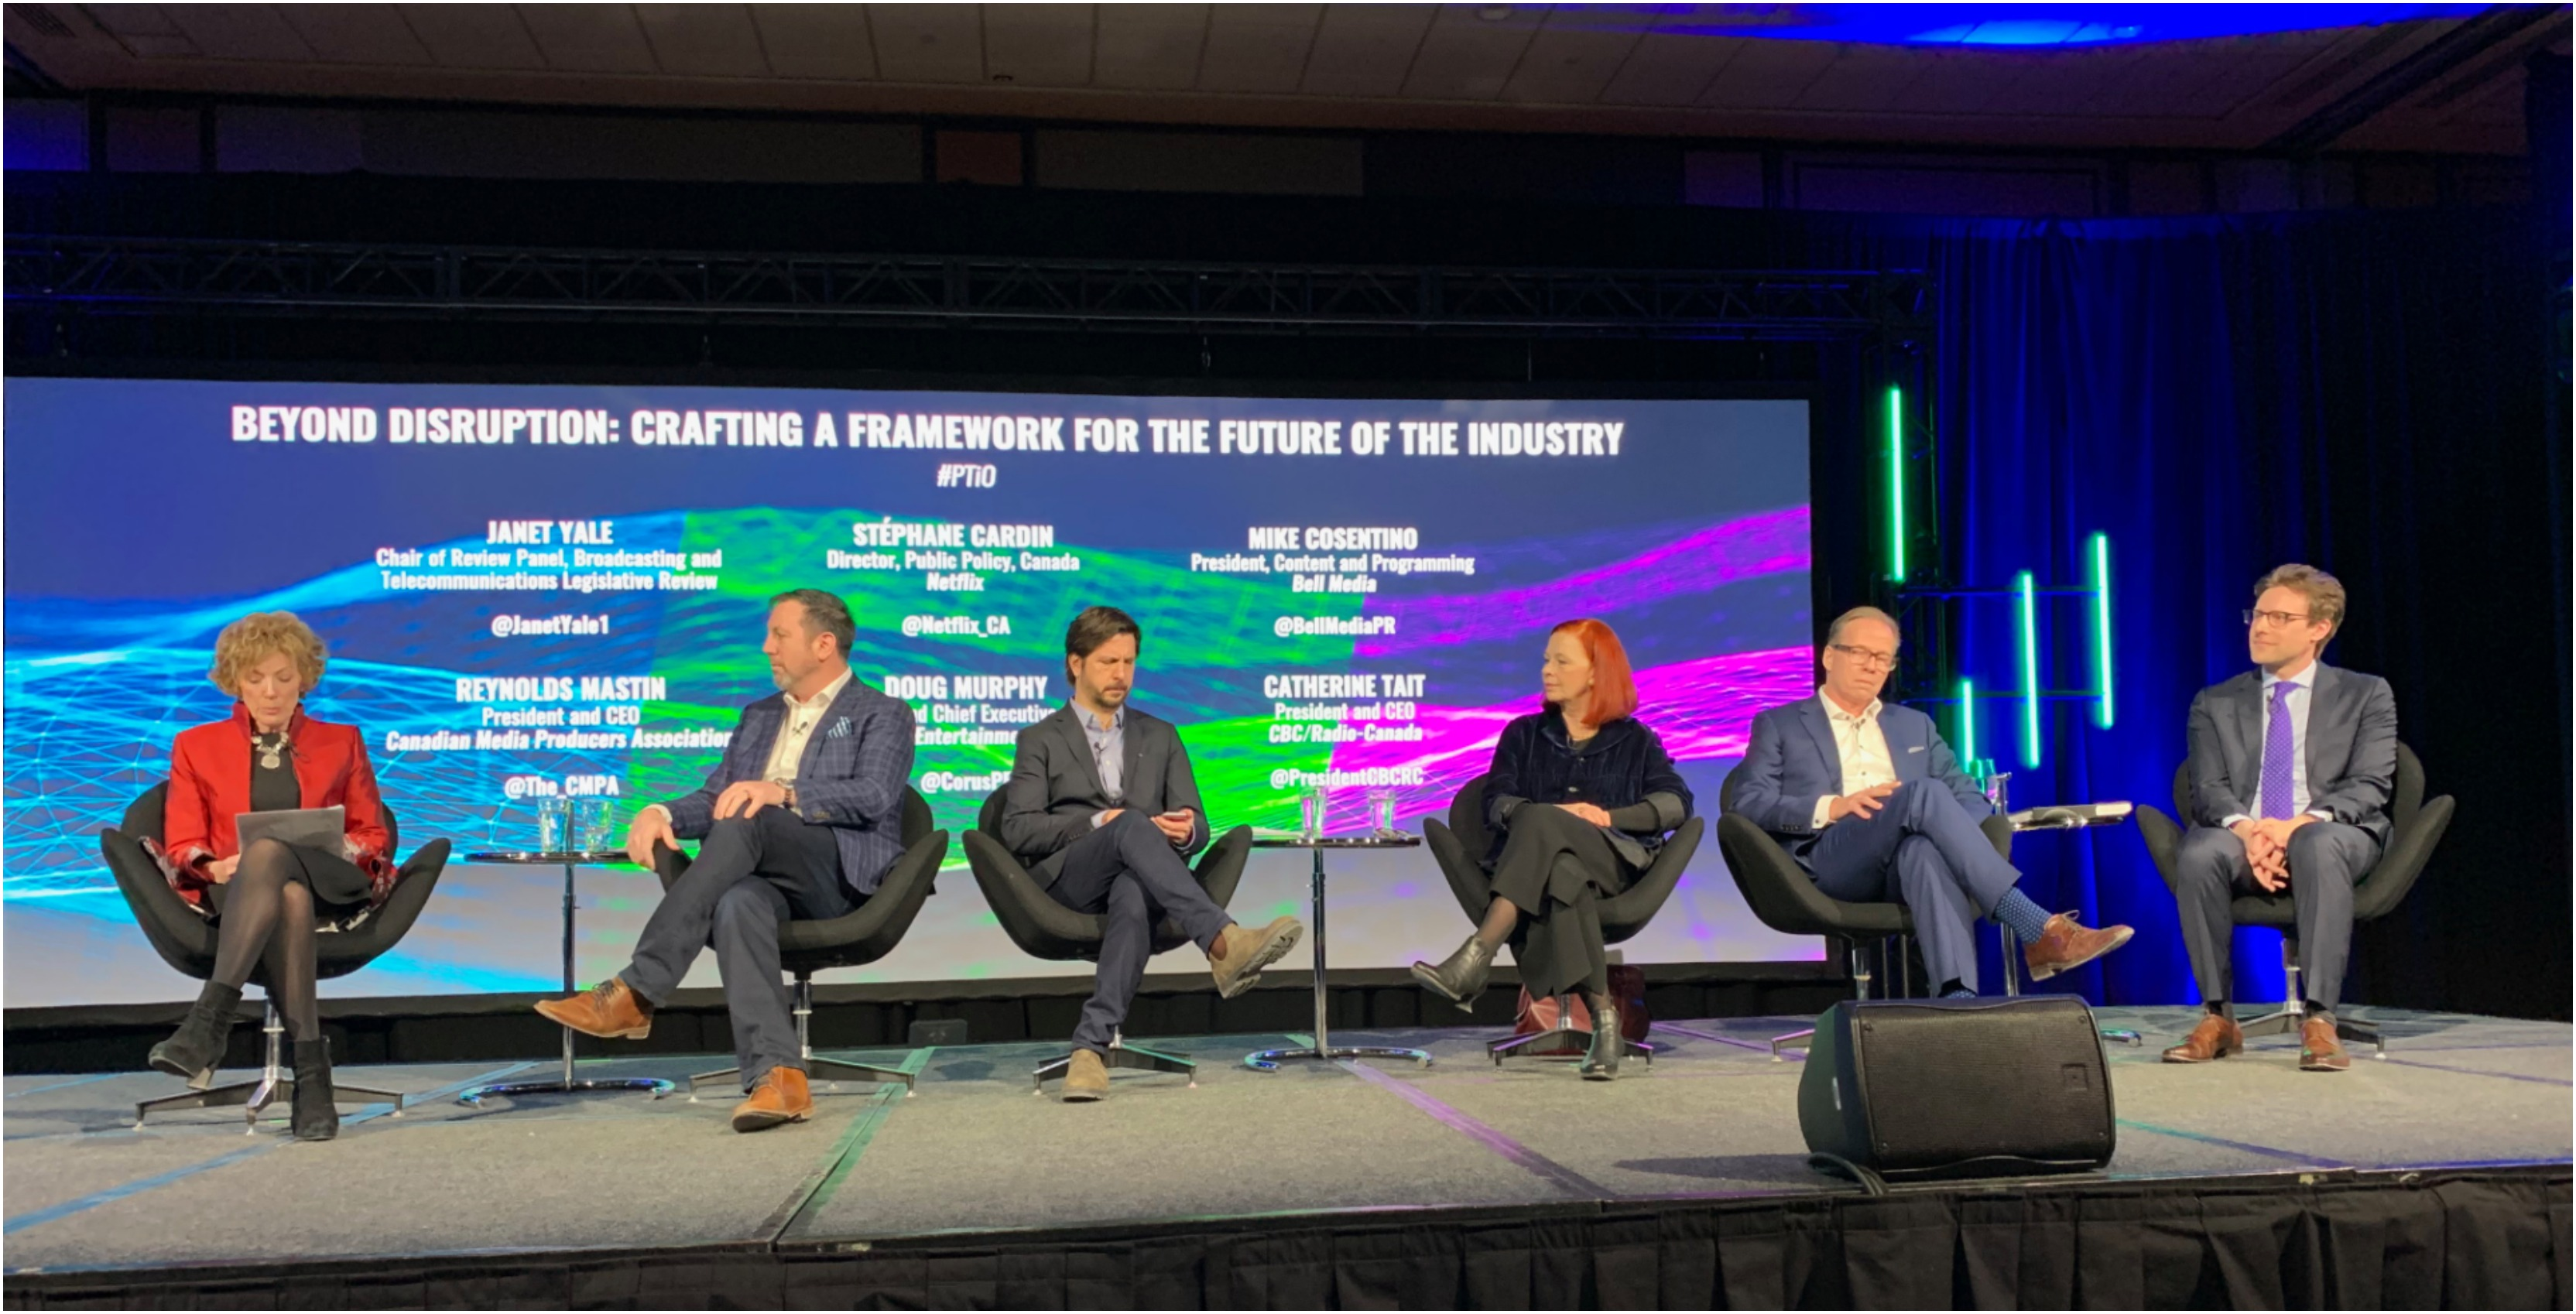 c07fc871ab0 CBC president Catherine Tait pointed a finger at Netflix at a recent  conference panel in Ottawa